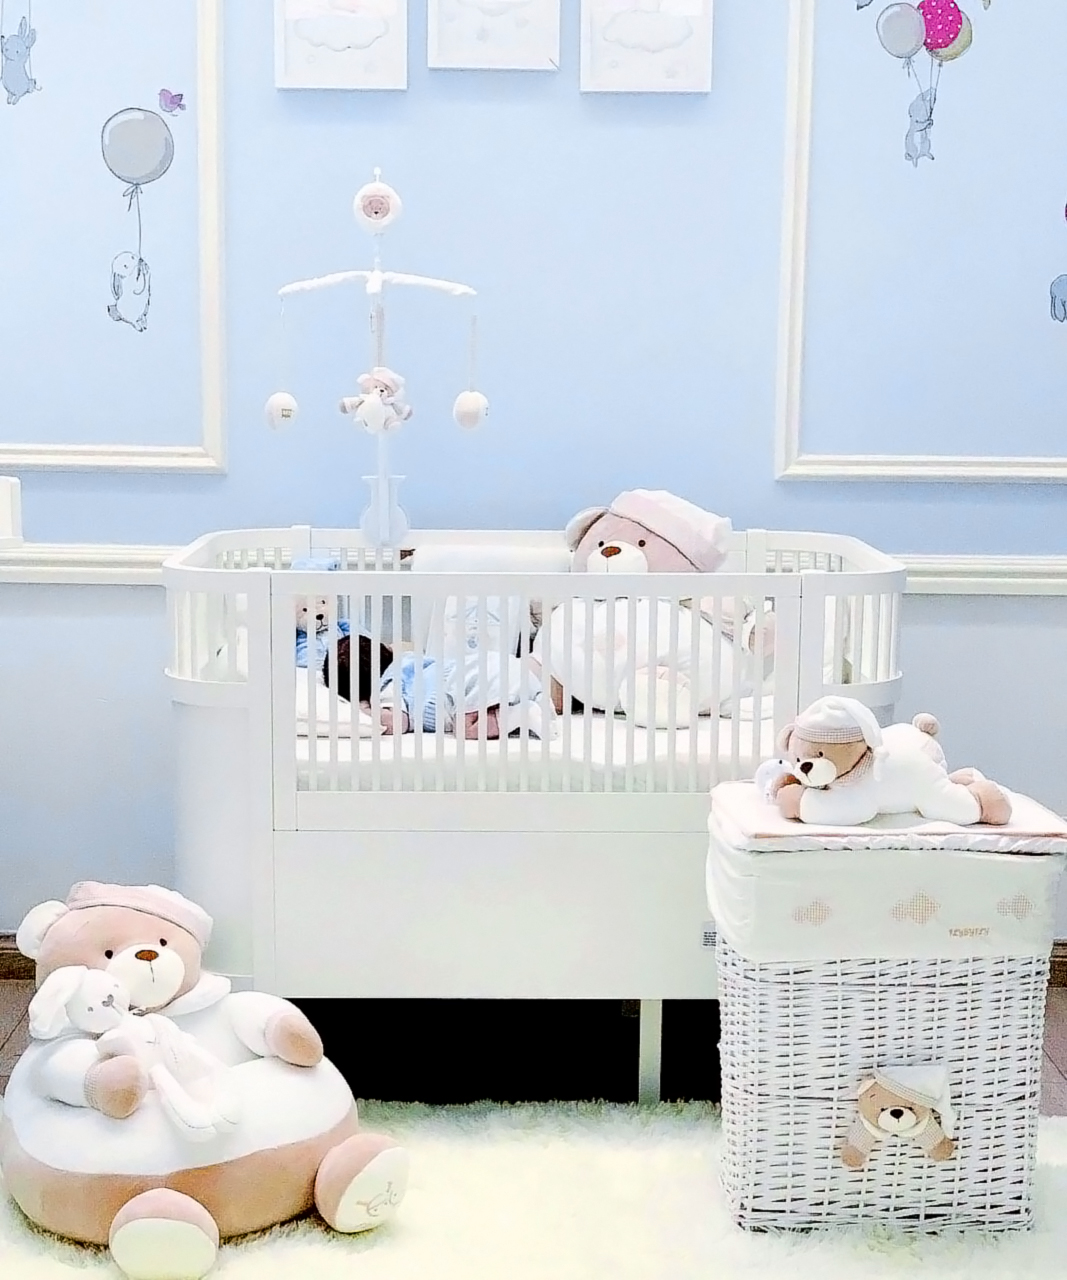 FLYBYFLY | Premium Quality Baby and Kids Products | New Arrivals